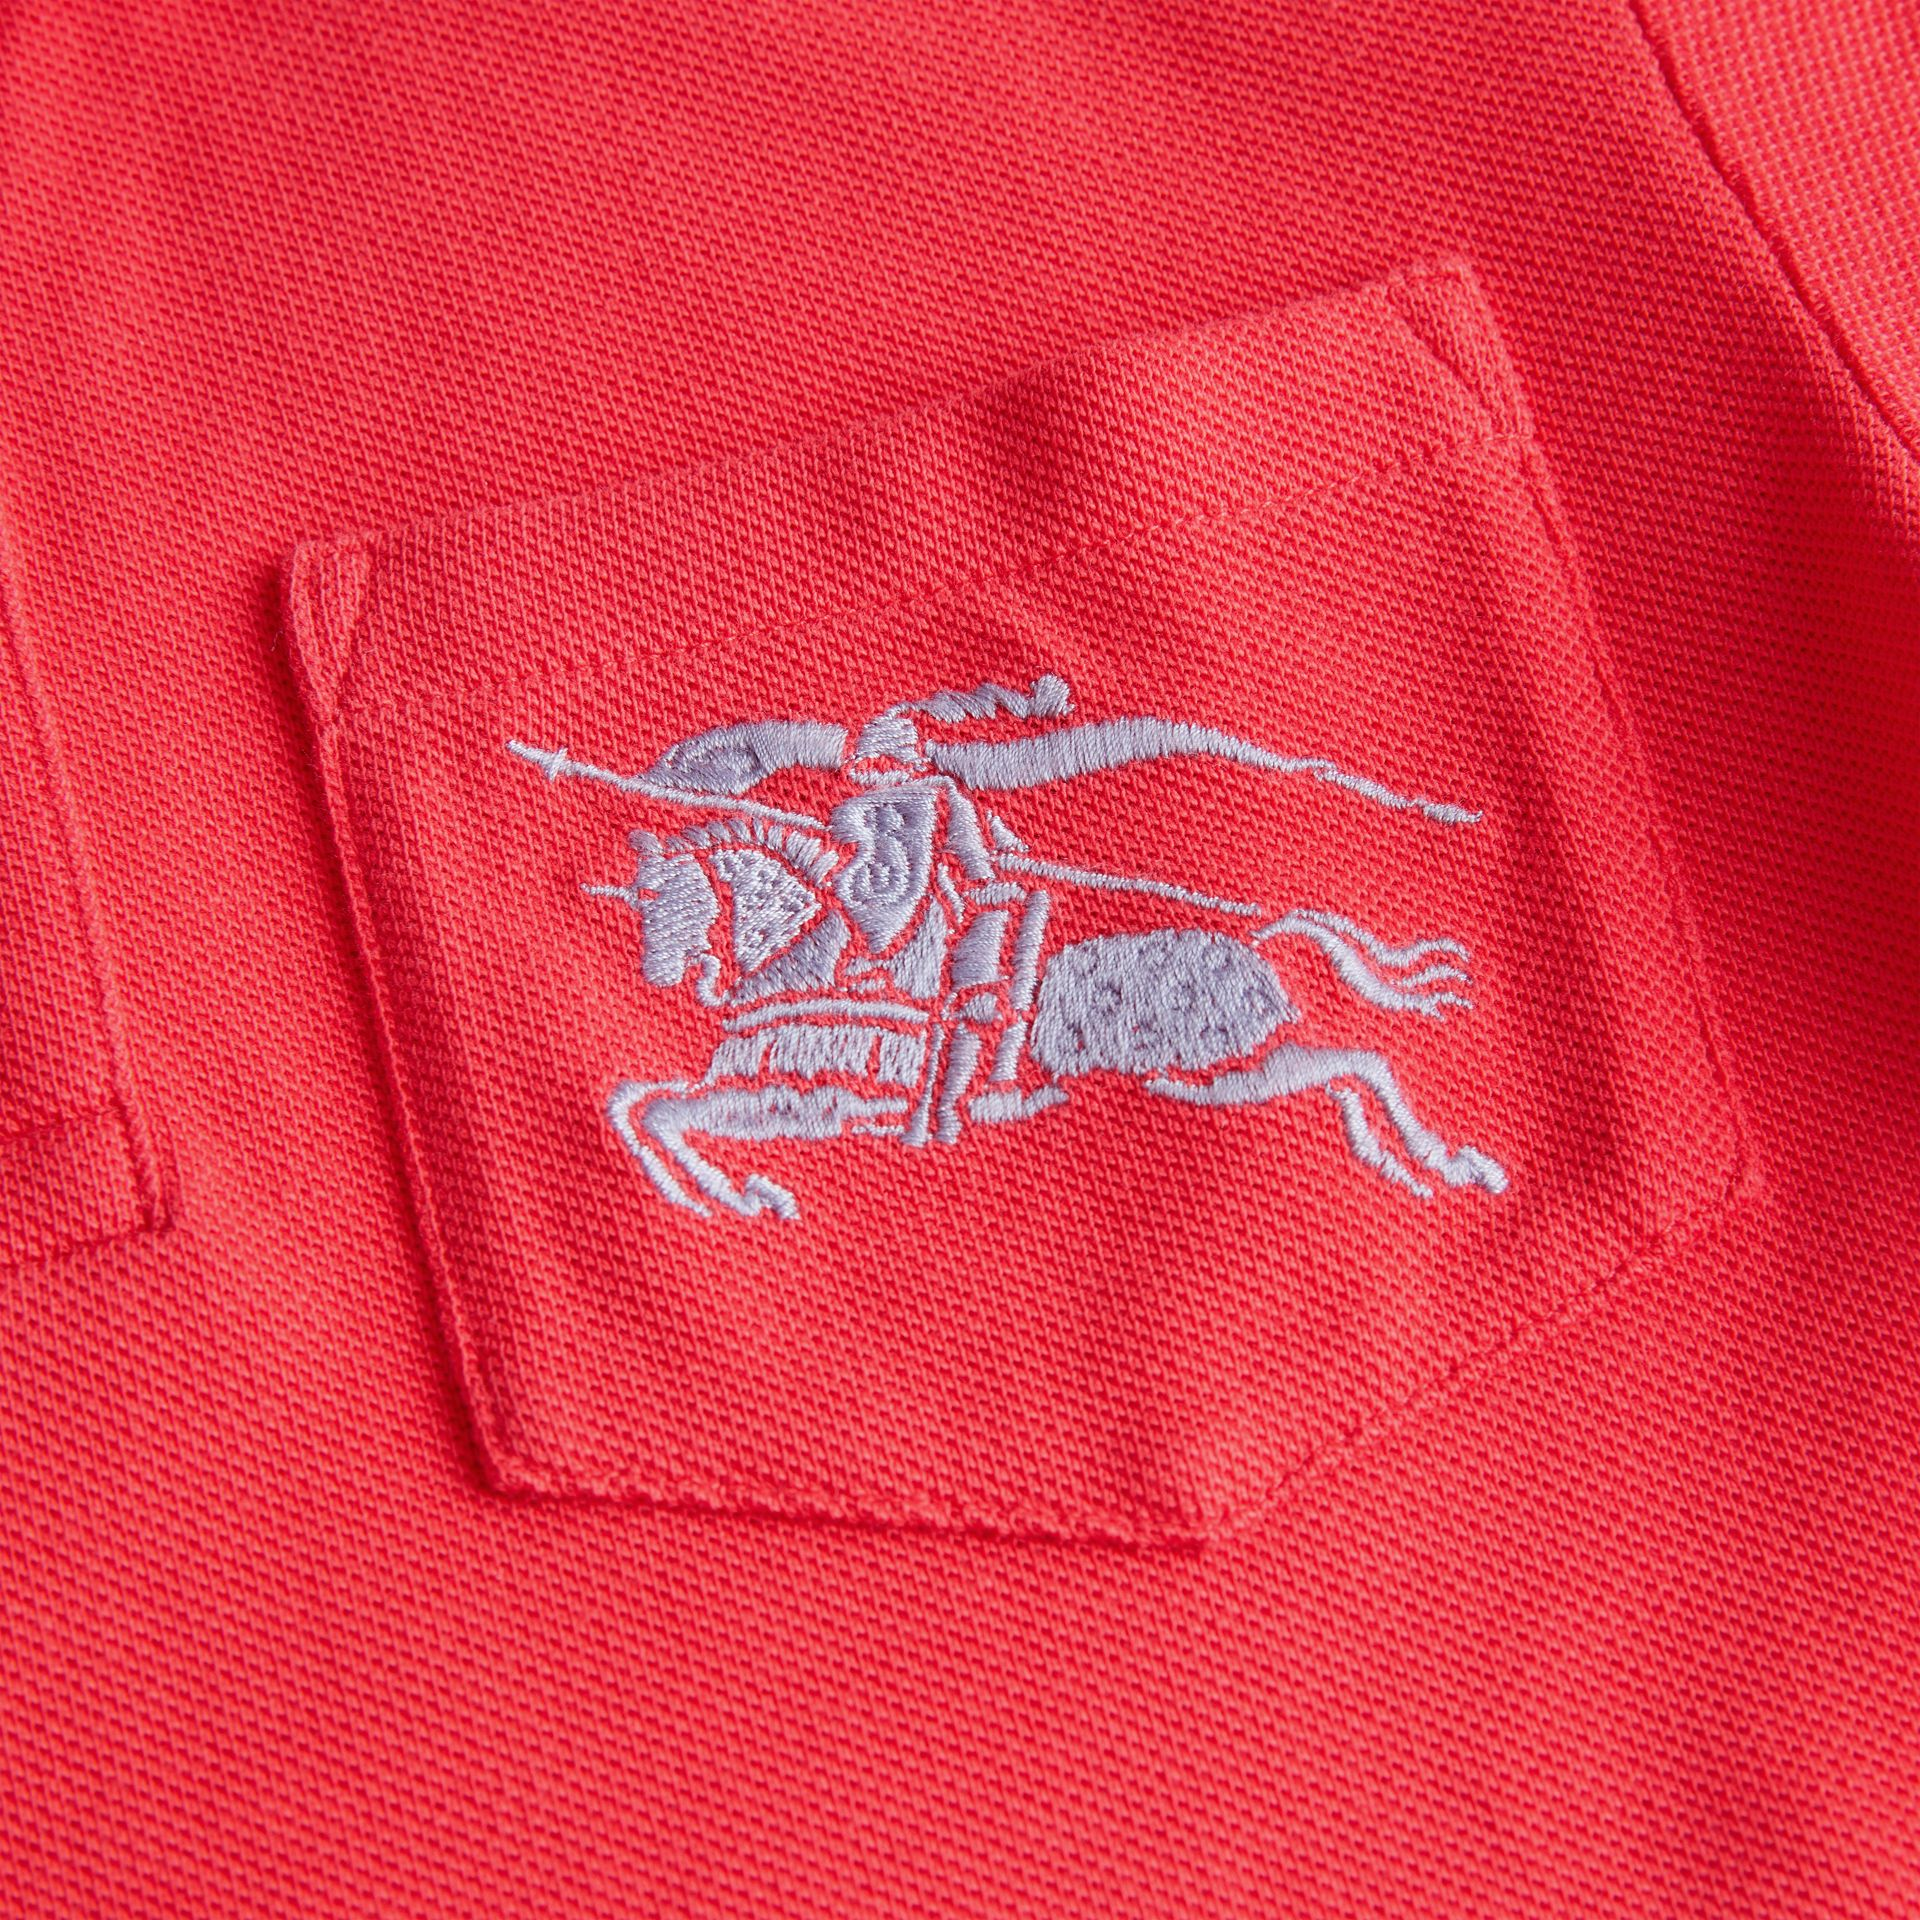 EKD Logo Cotton Piqué Polo Shirt in Bright Red | Burberry Hong Kong - gallery image 1